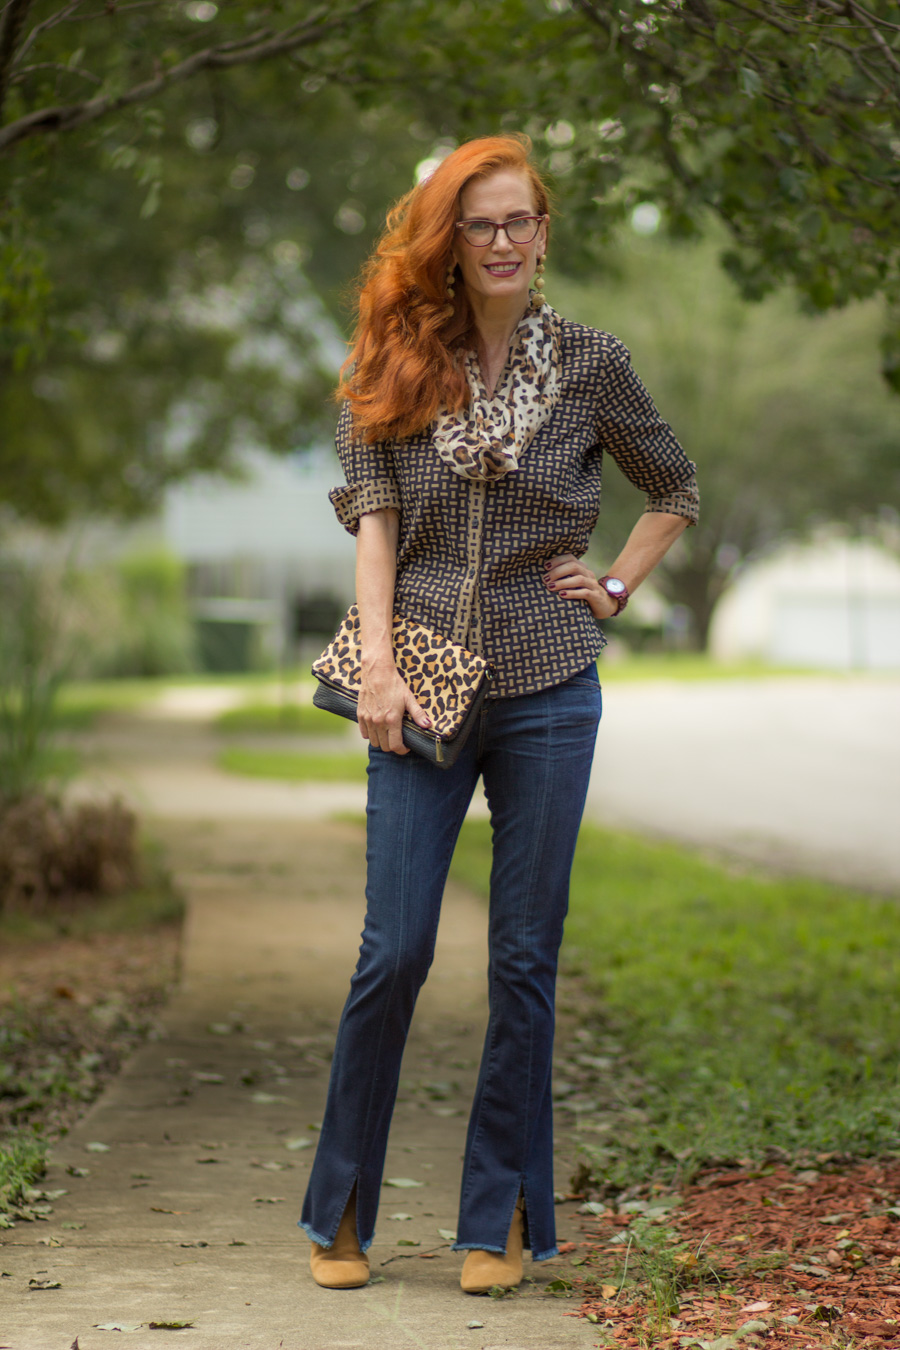 9c68d5d1a4ef Regan from Nifty 50 and Fabulous and Suzanne from Crazy Blonde Life both  had the same idea for early fall in the south! Black tops and pants with  animal ...